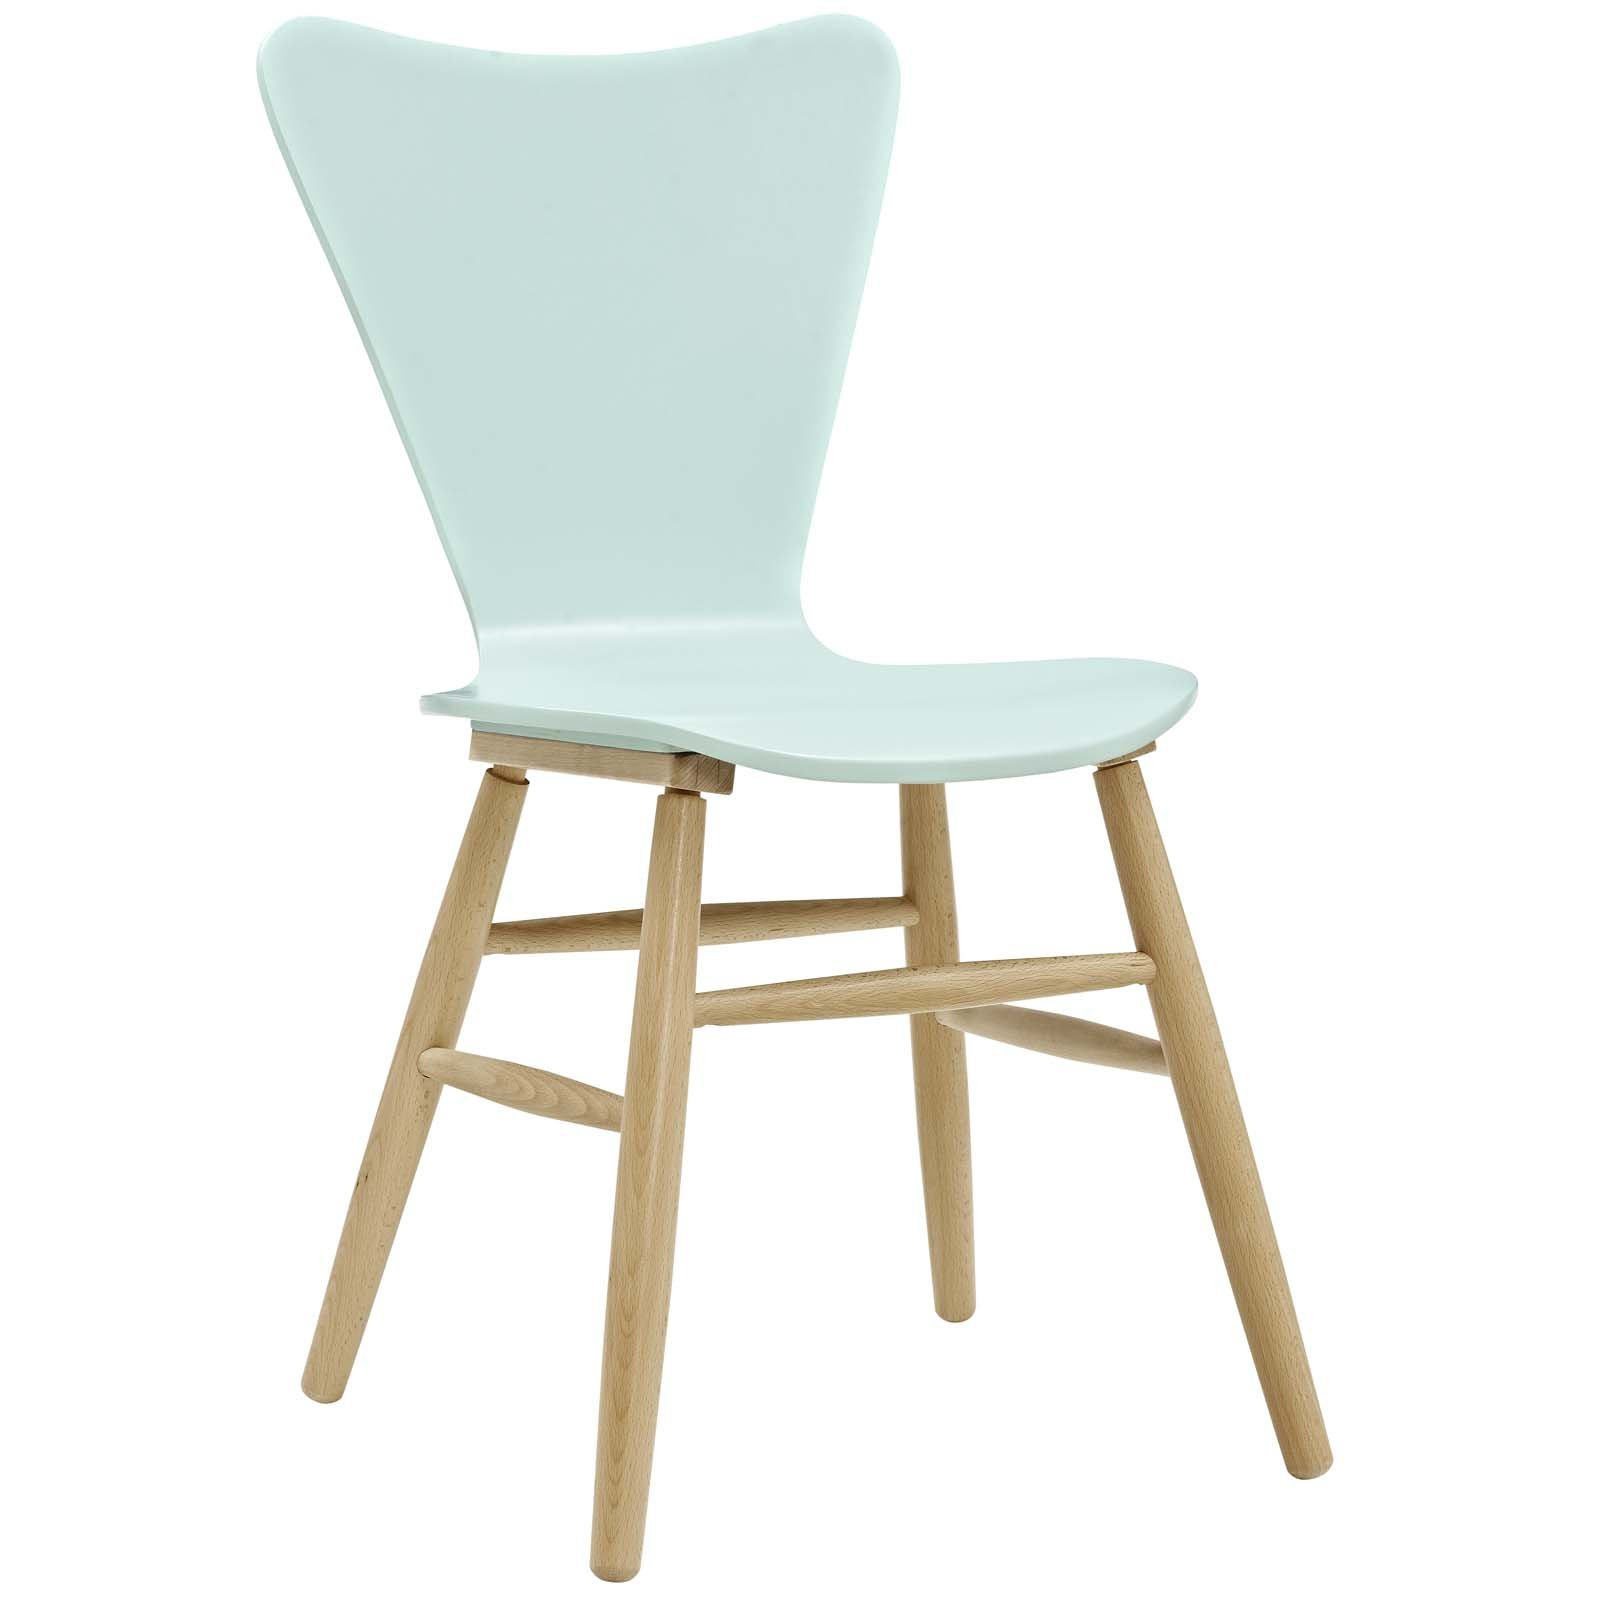 Modway EEI-2672-LBU Cascade Mid-Century Modern Wood Dining Side Chair, Light Blue